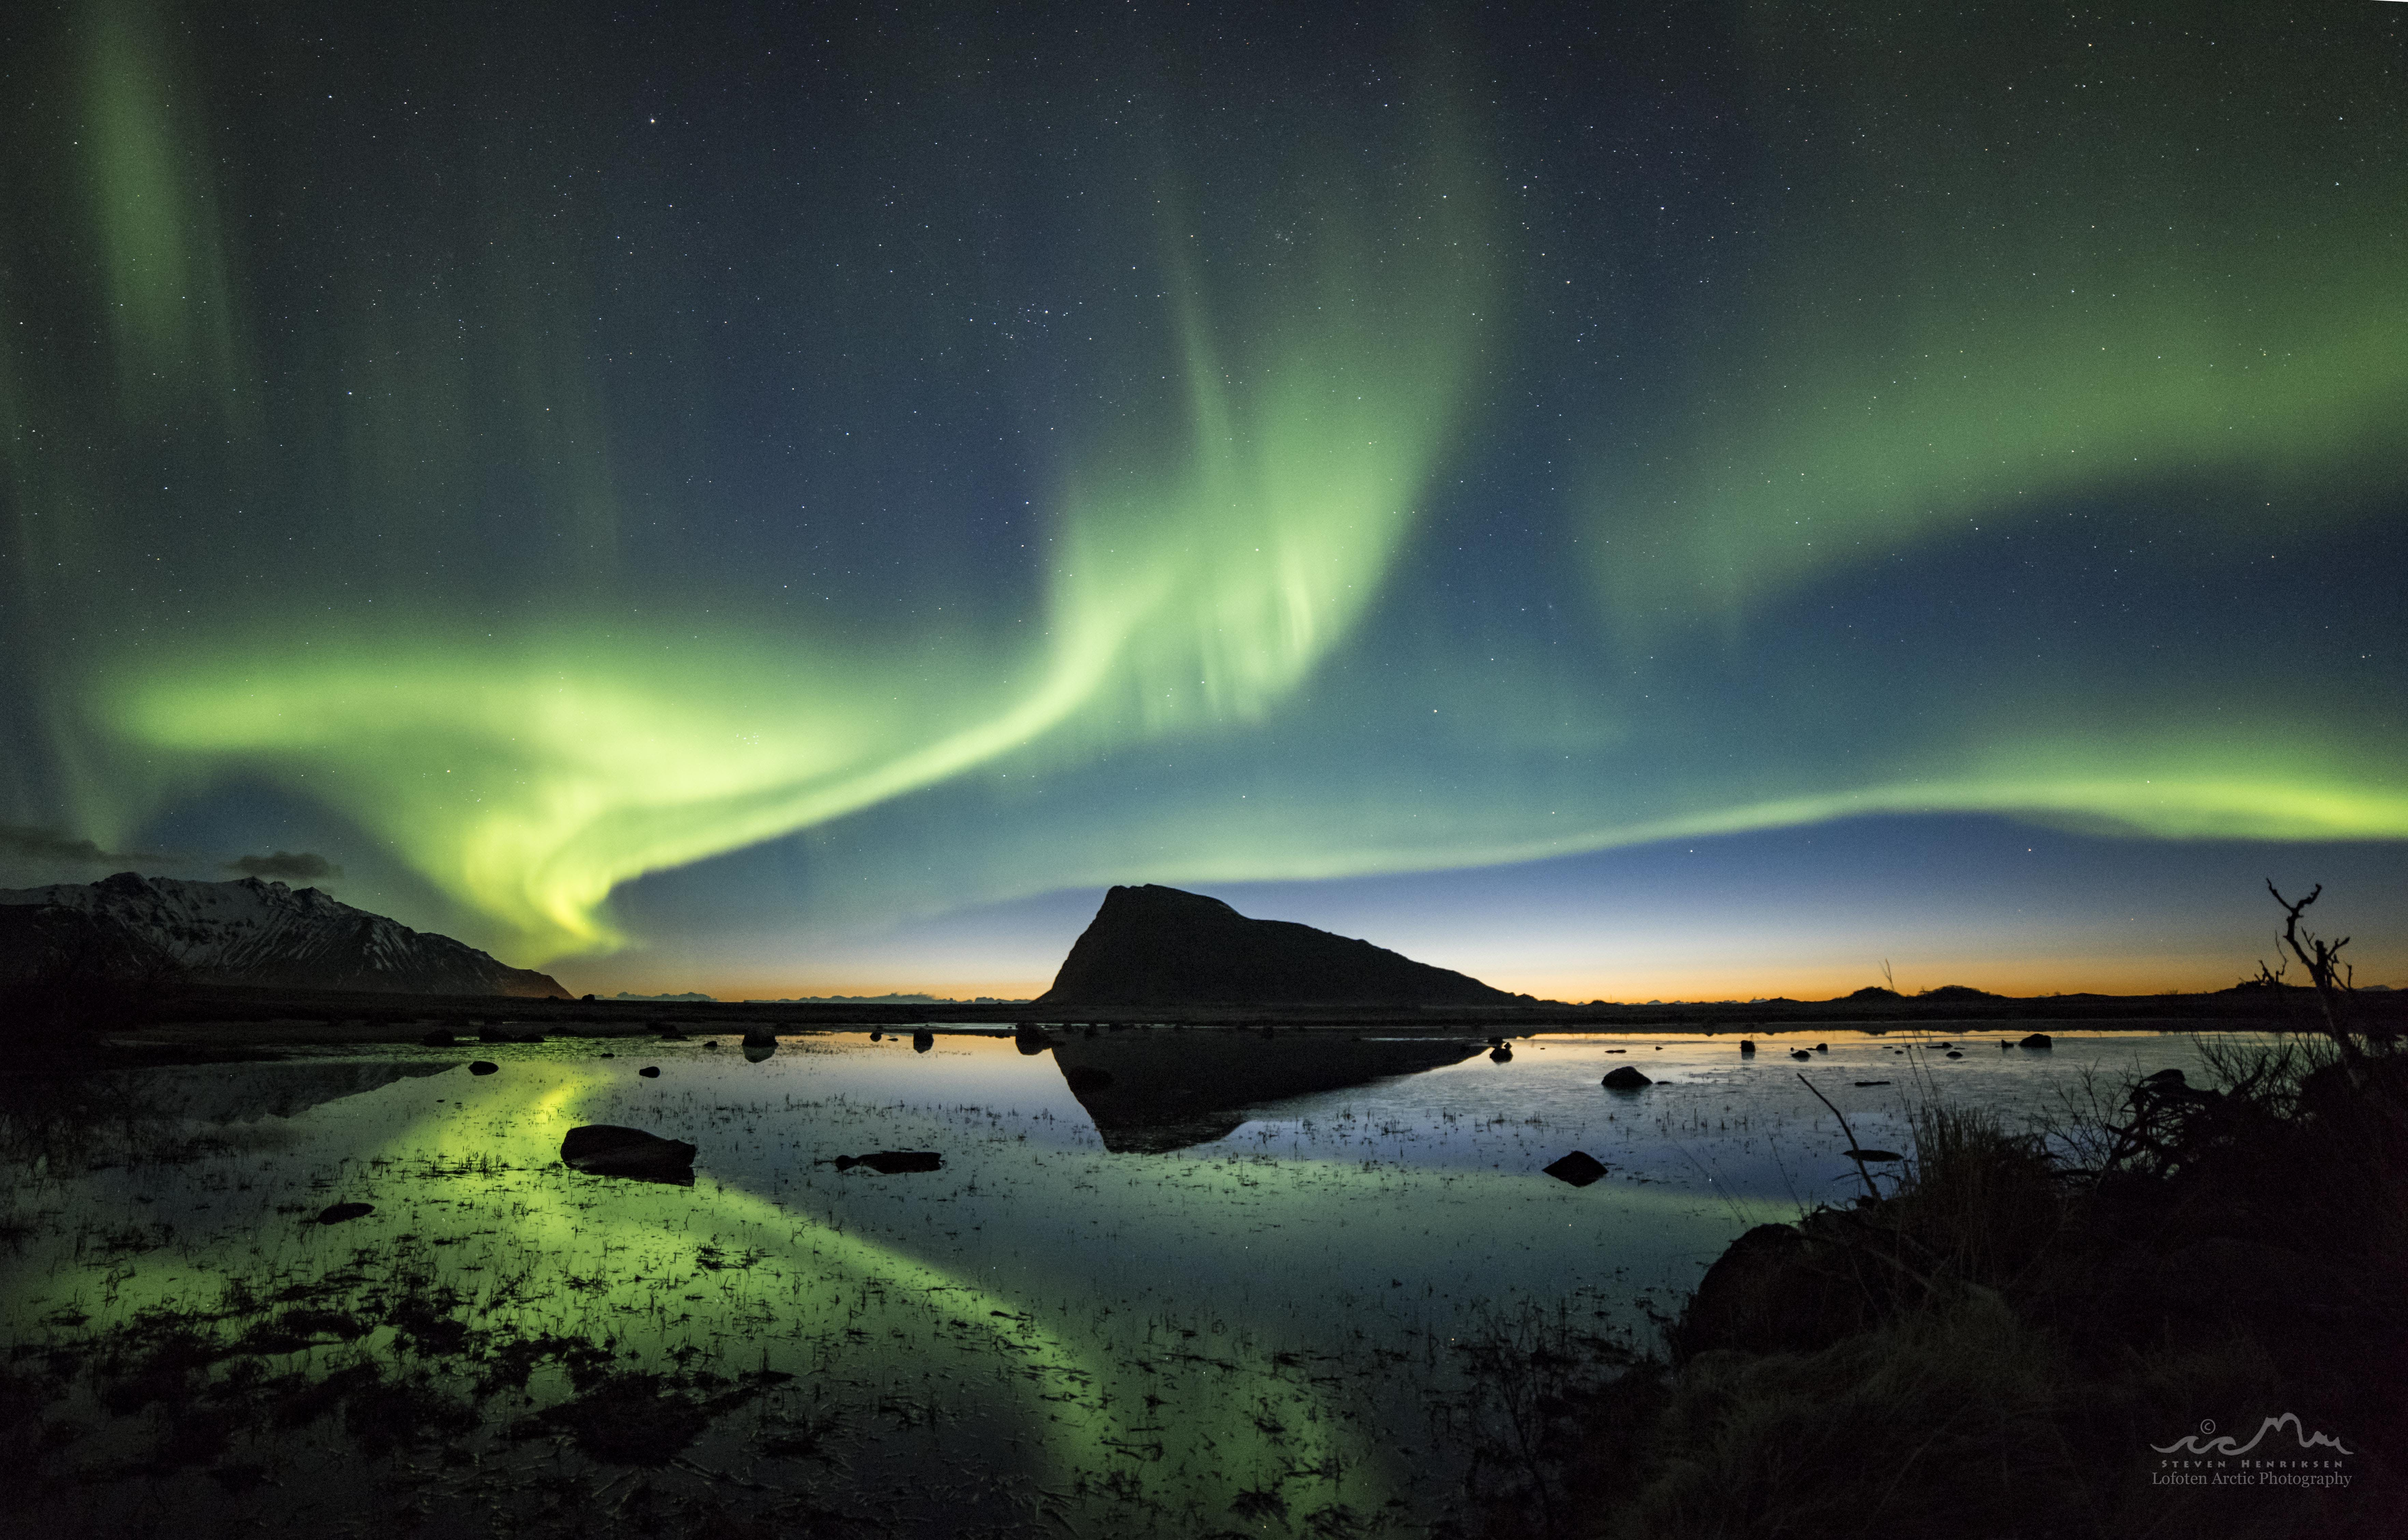 How to get the most out of your travel in Northern Norway